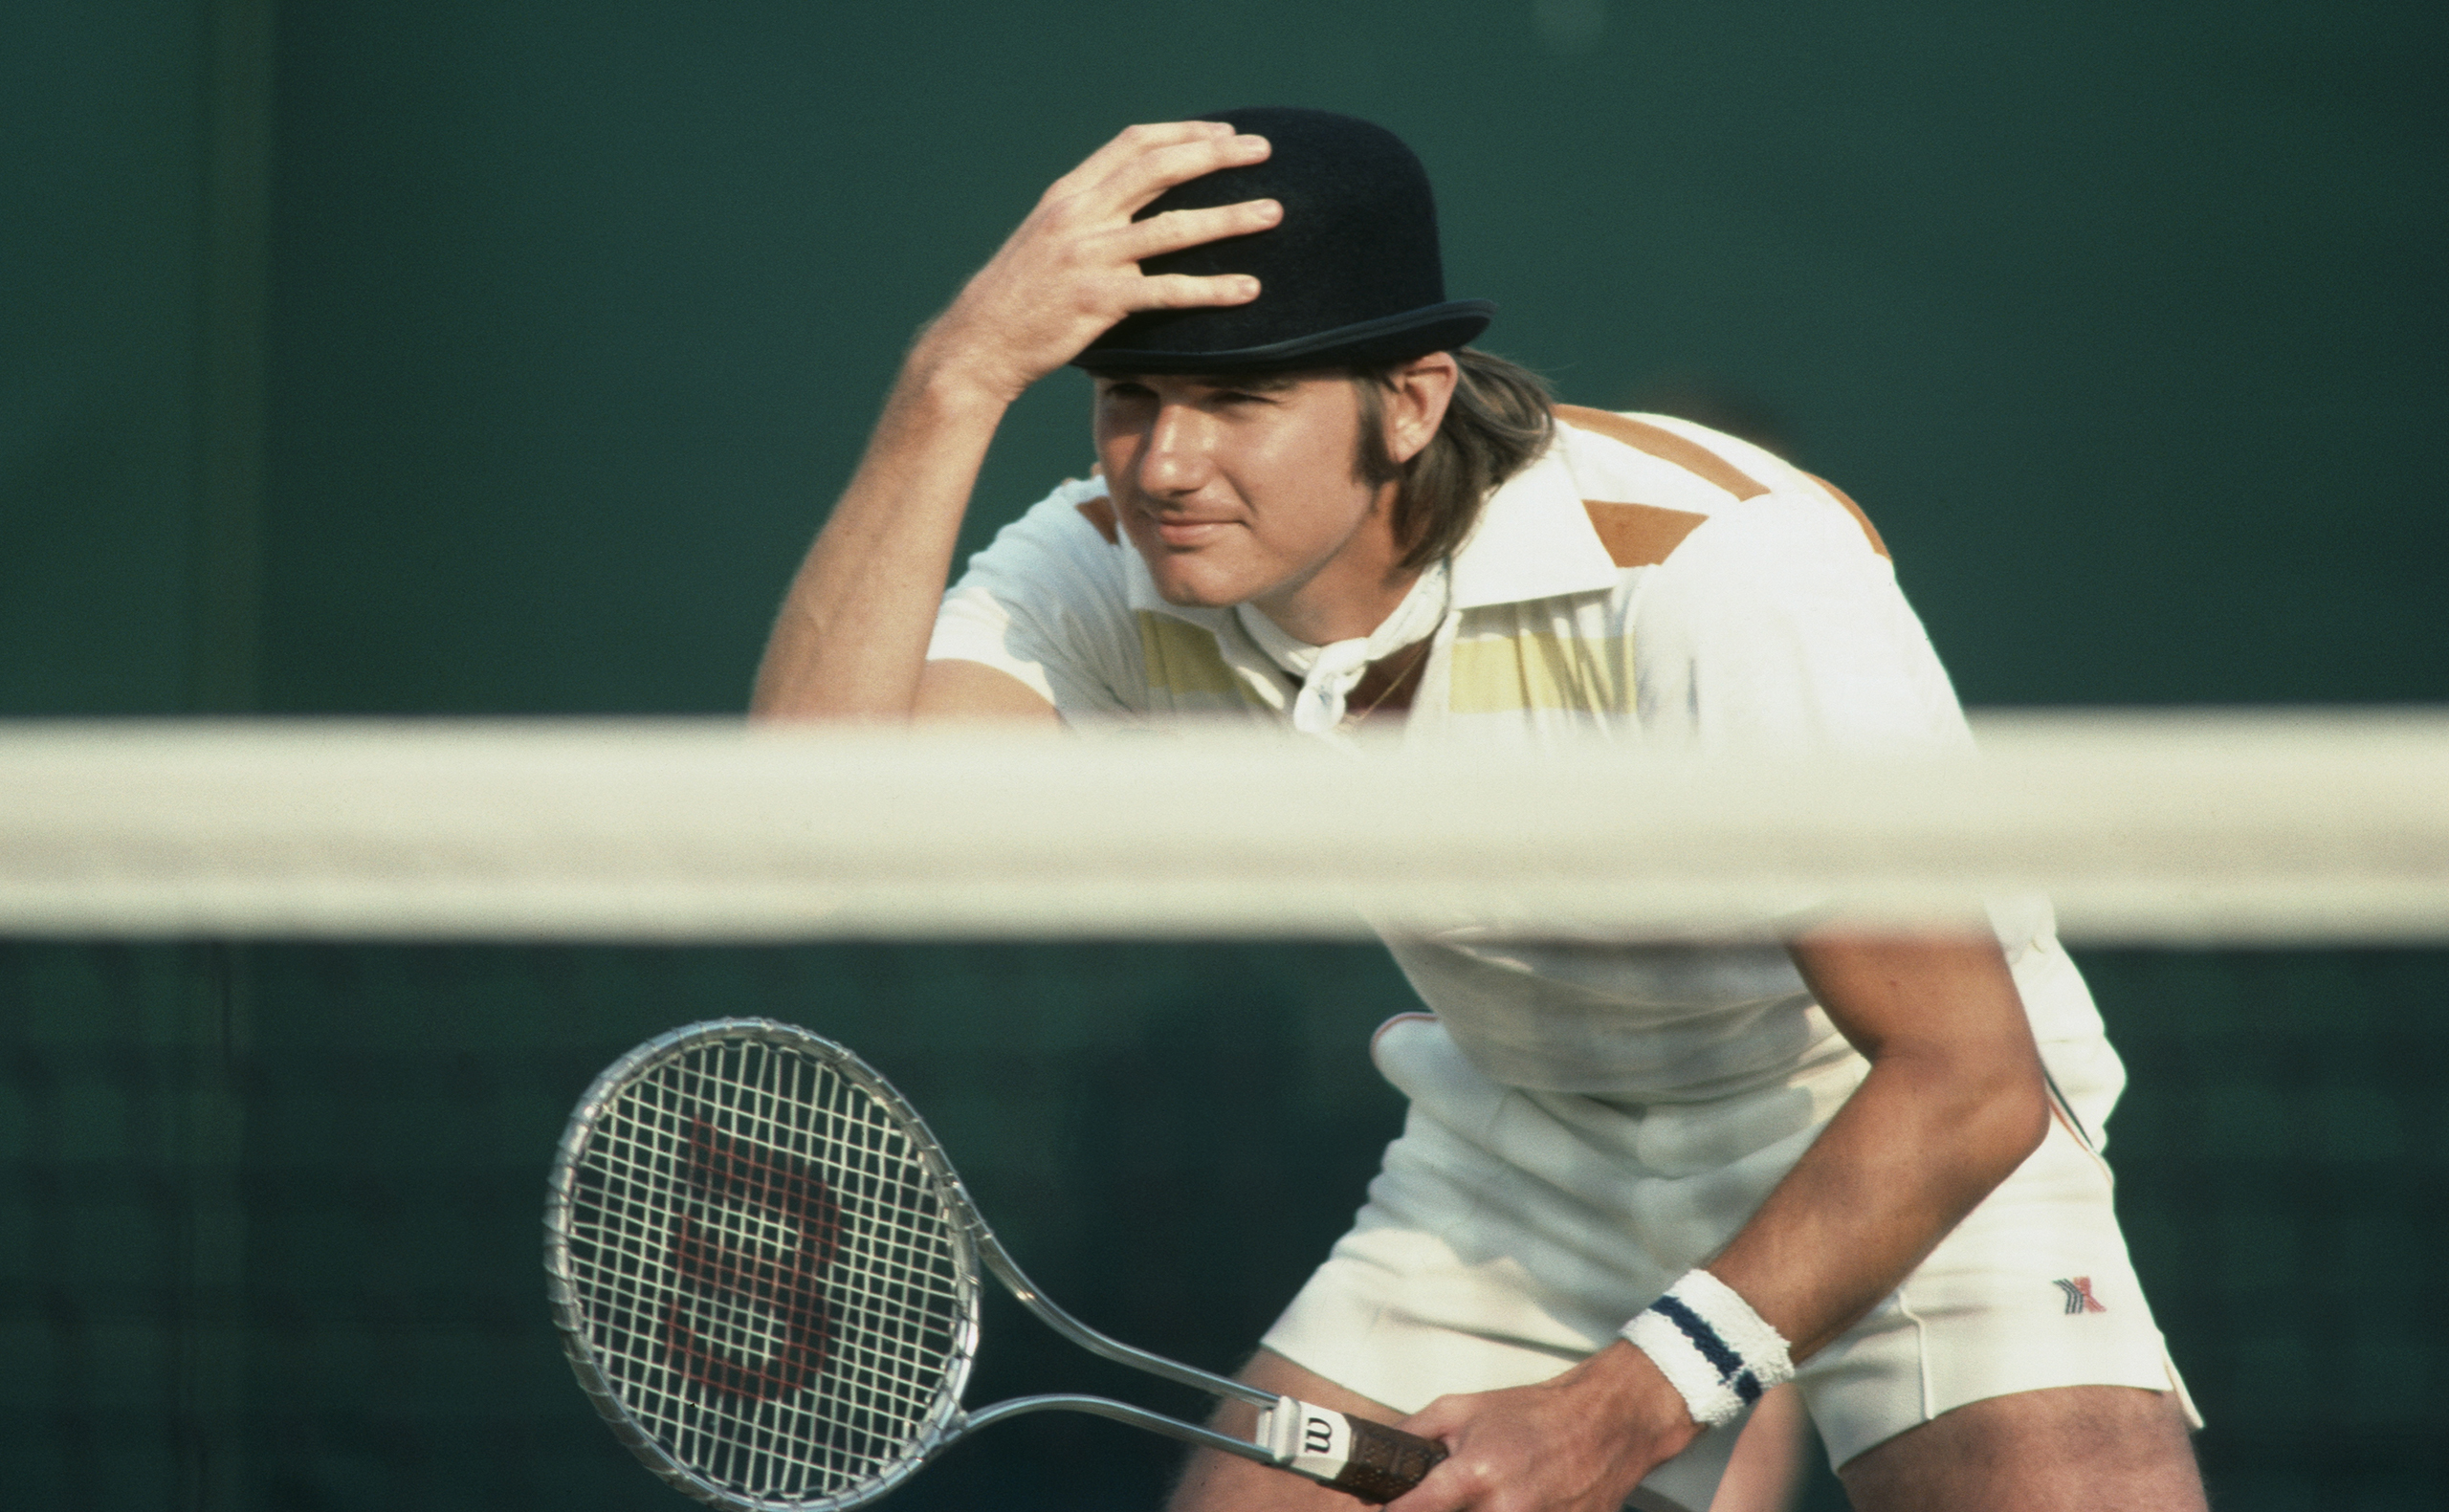 Jimmy Connors clowns and jokes with the spectators by wearing a bowler hat during a men's doubles match in 1976